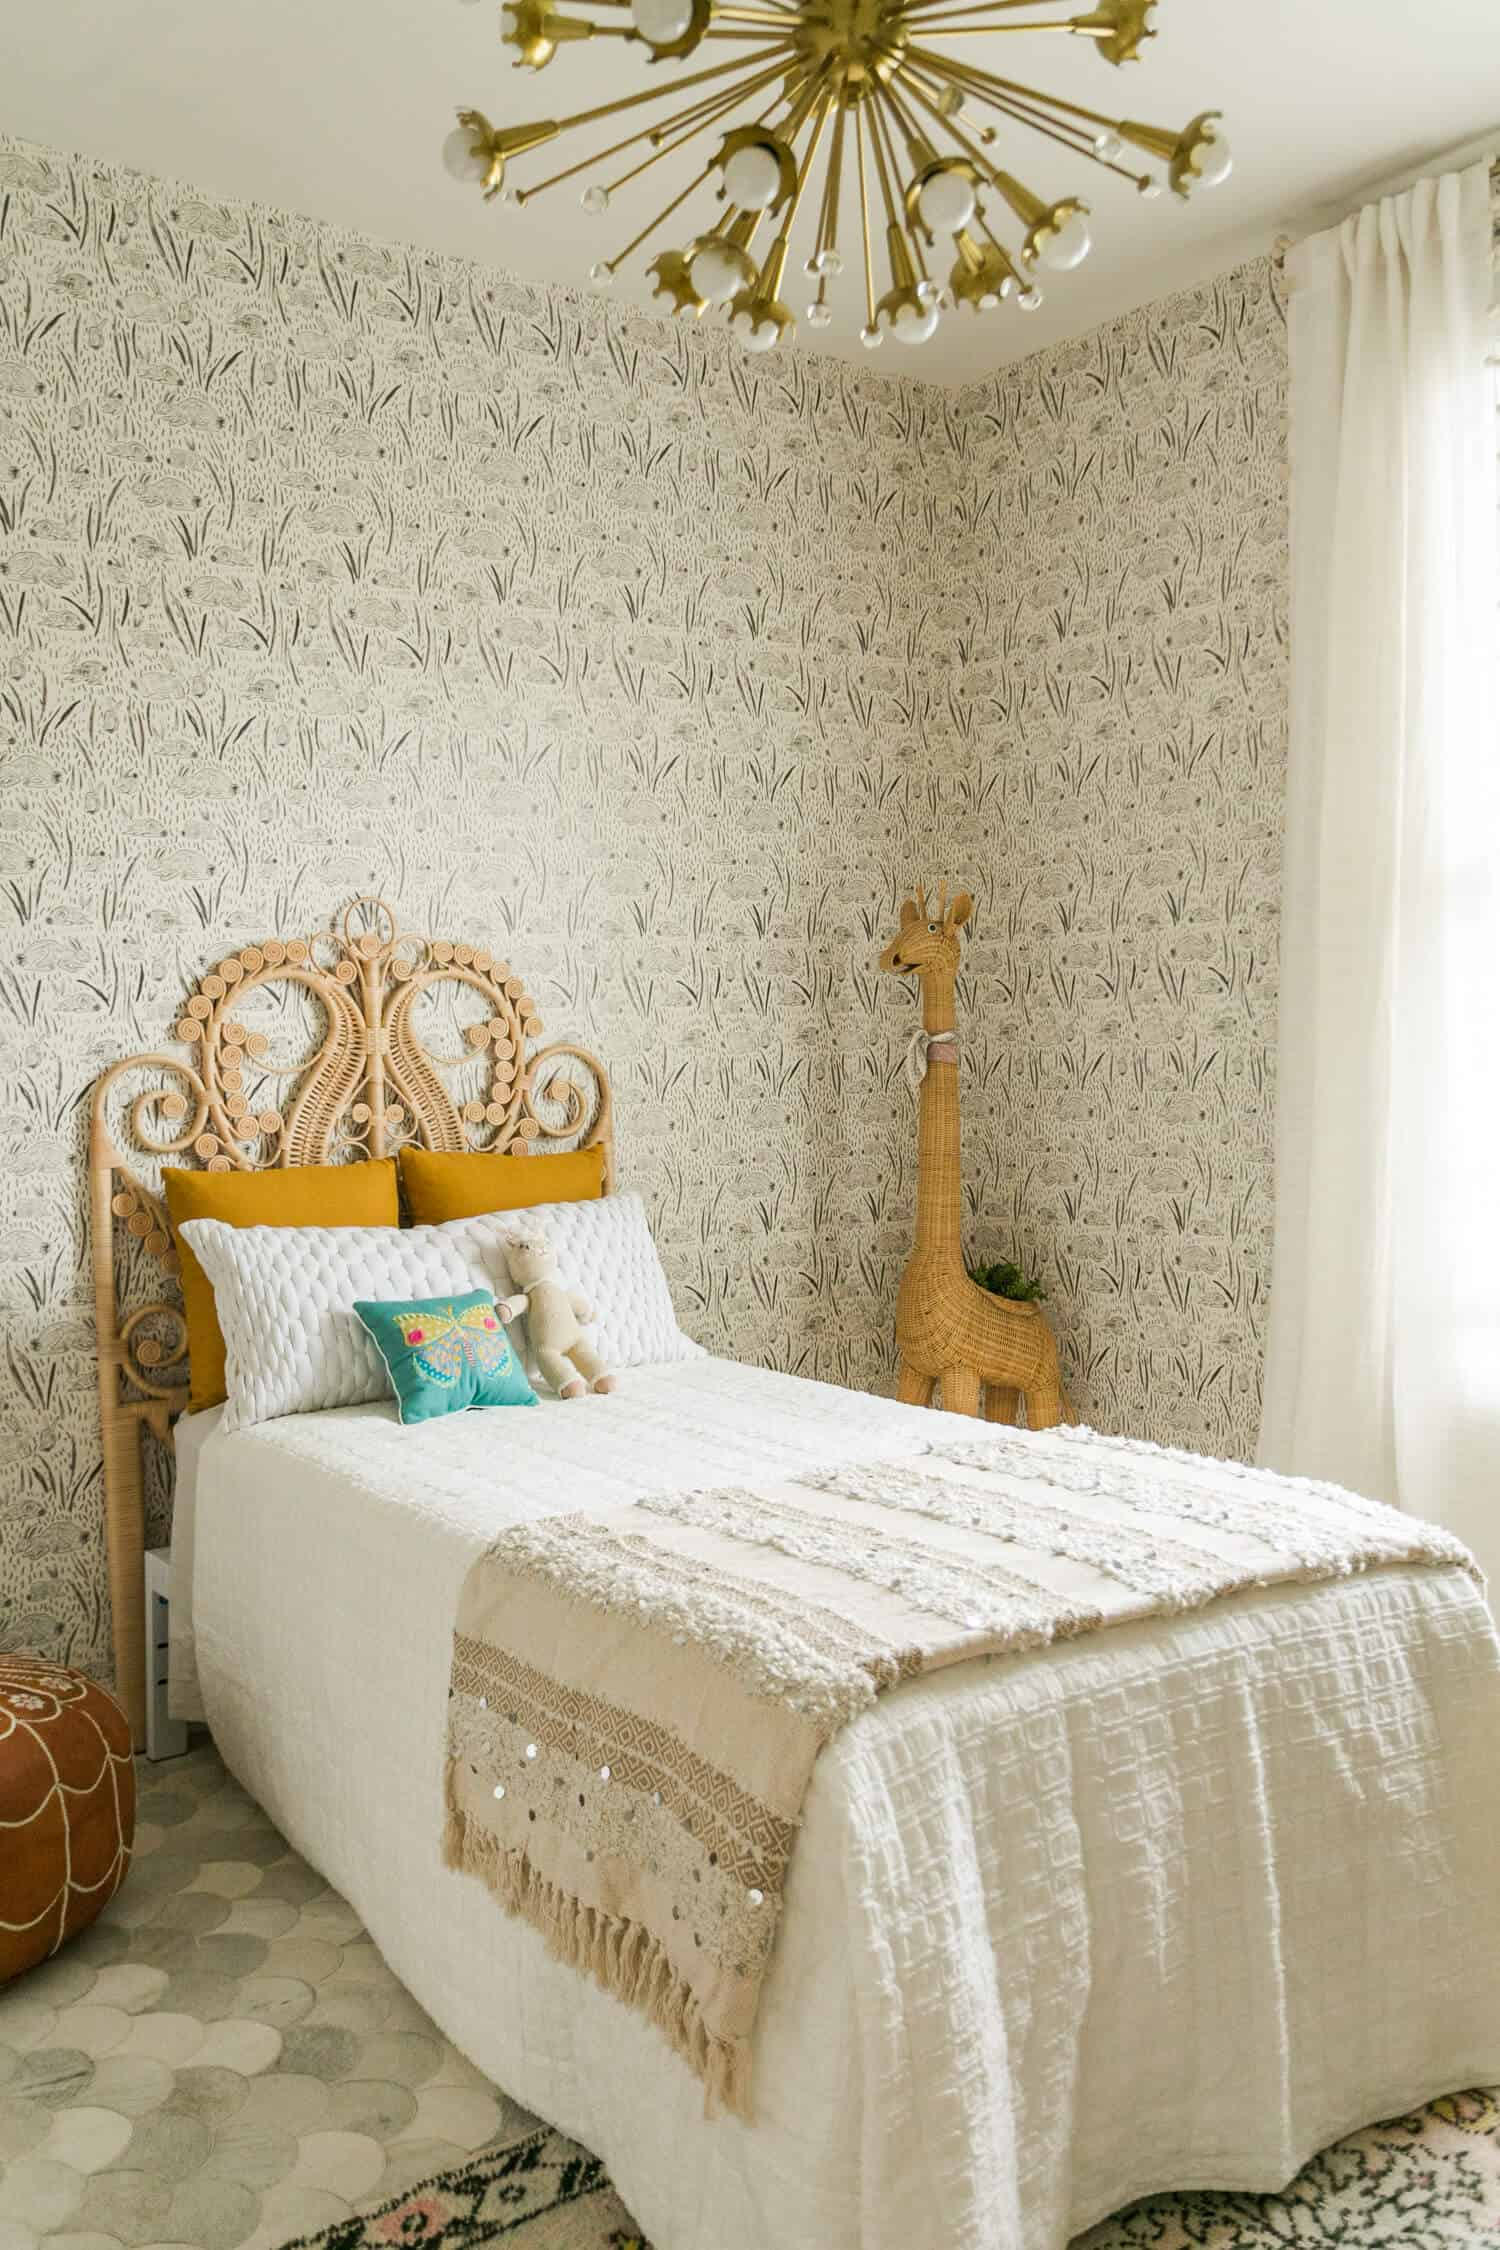 Kids' bedroom with earthy touches